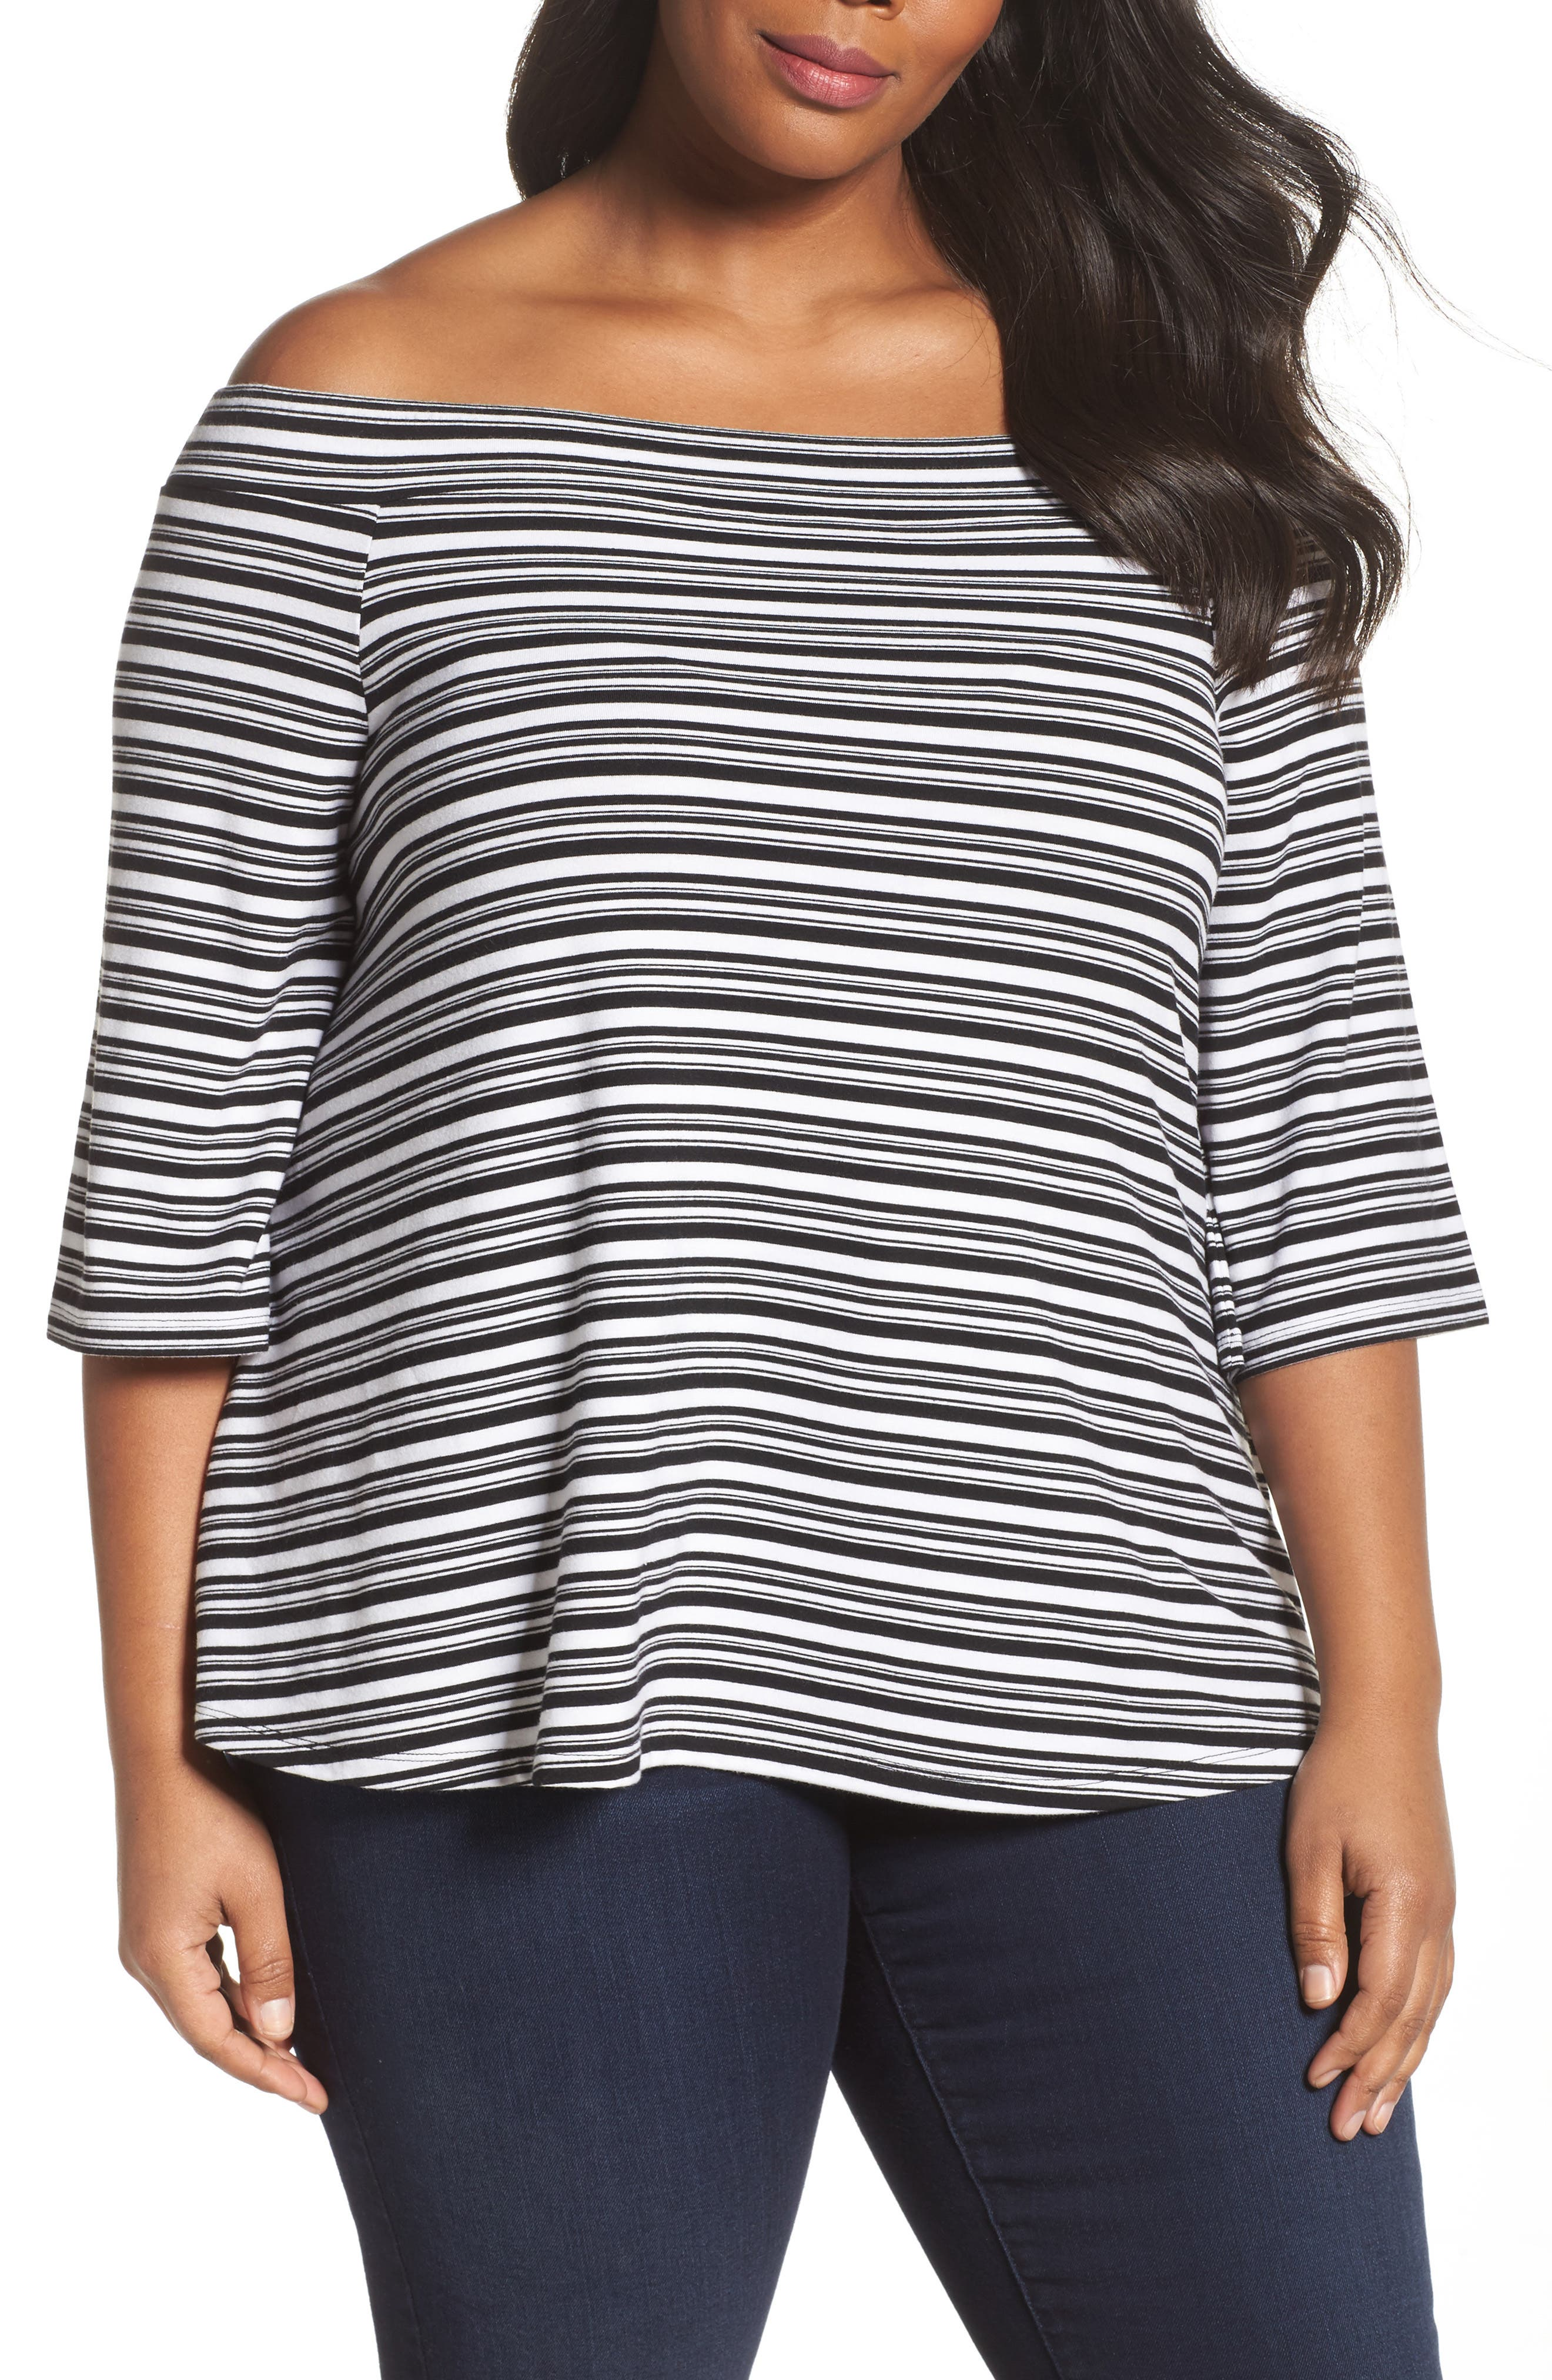 Stripe Off the Shoulder Top,                             Main thumbnail 1, color,                             Black- White Veriegated Stripe